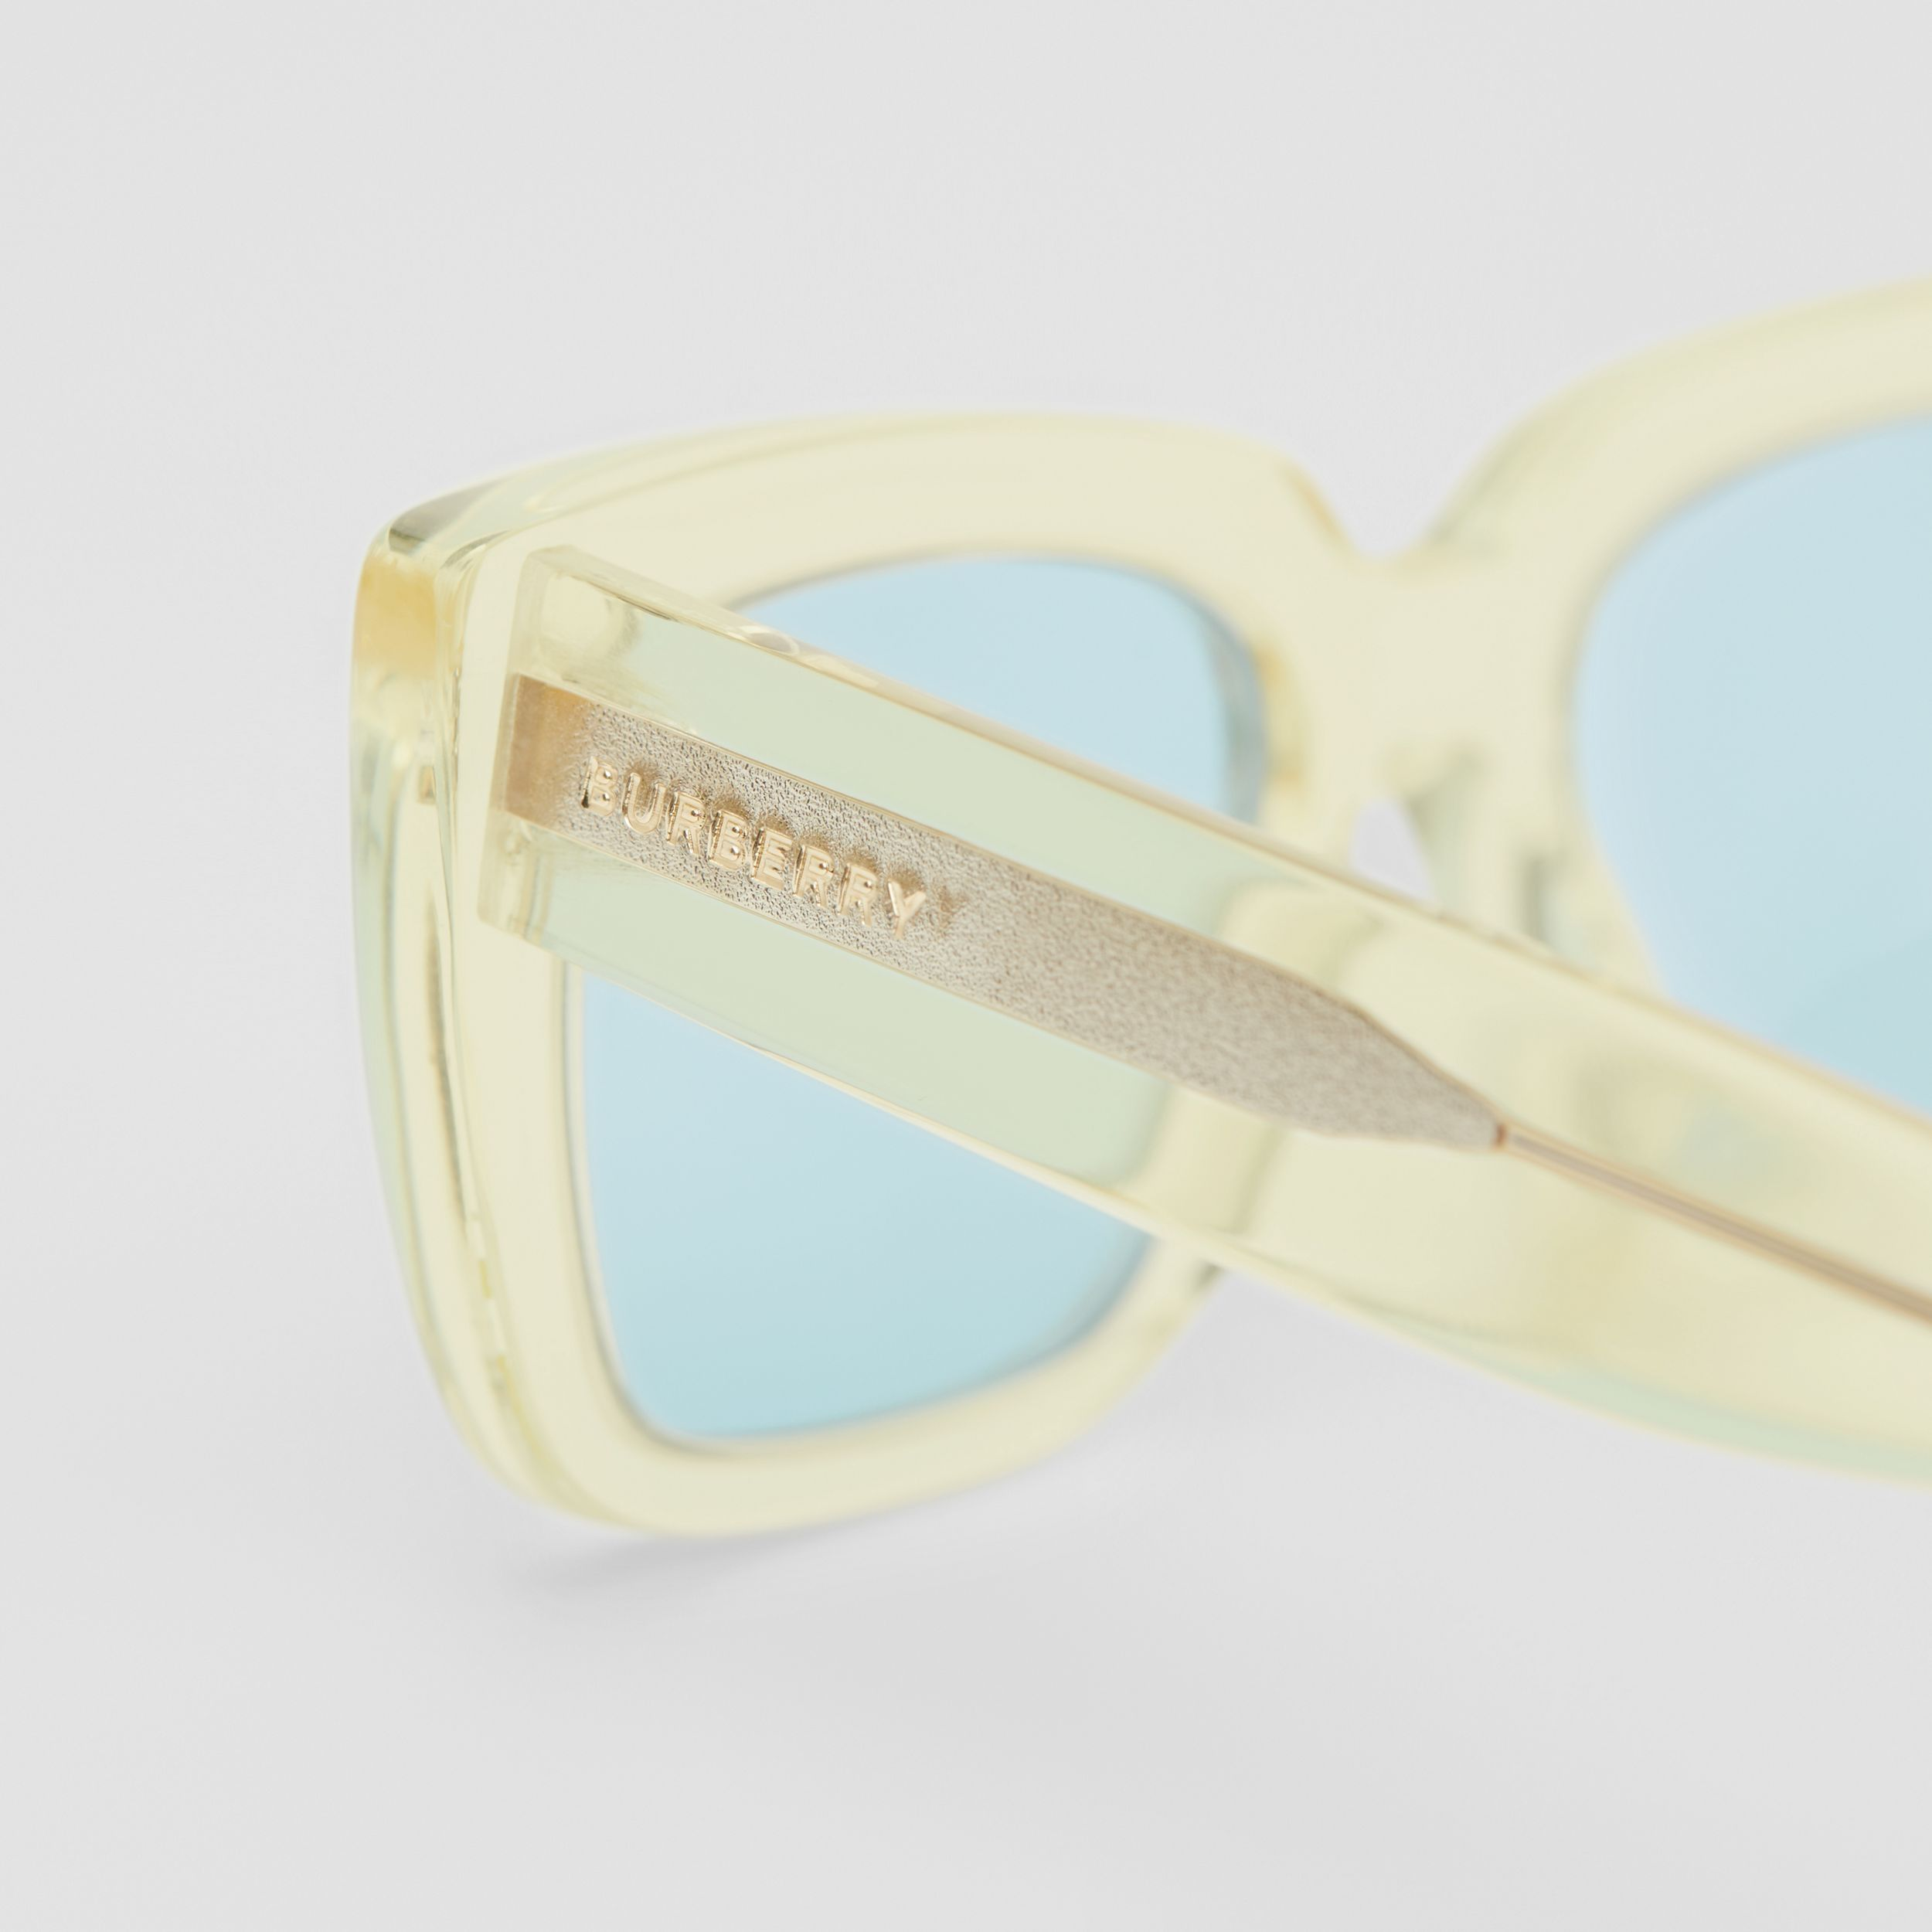 Bio-acetate Rectangular Frame Sunglasses in Pale Yellow - Women | Burberry United Kingdom - 2